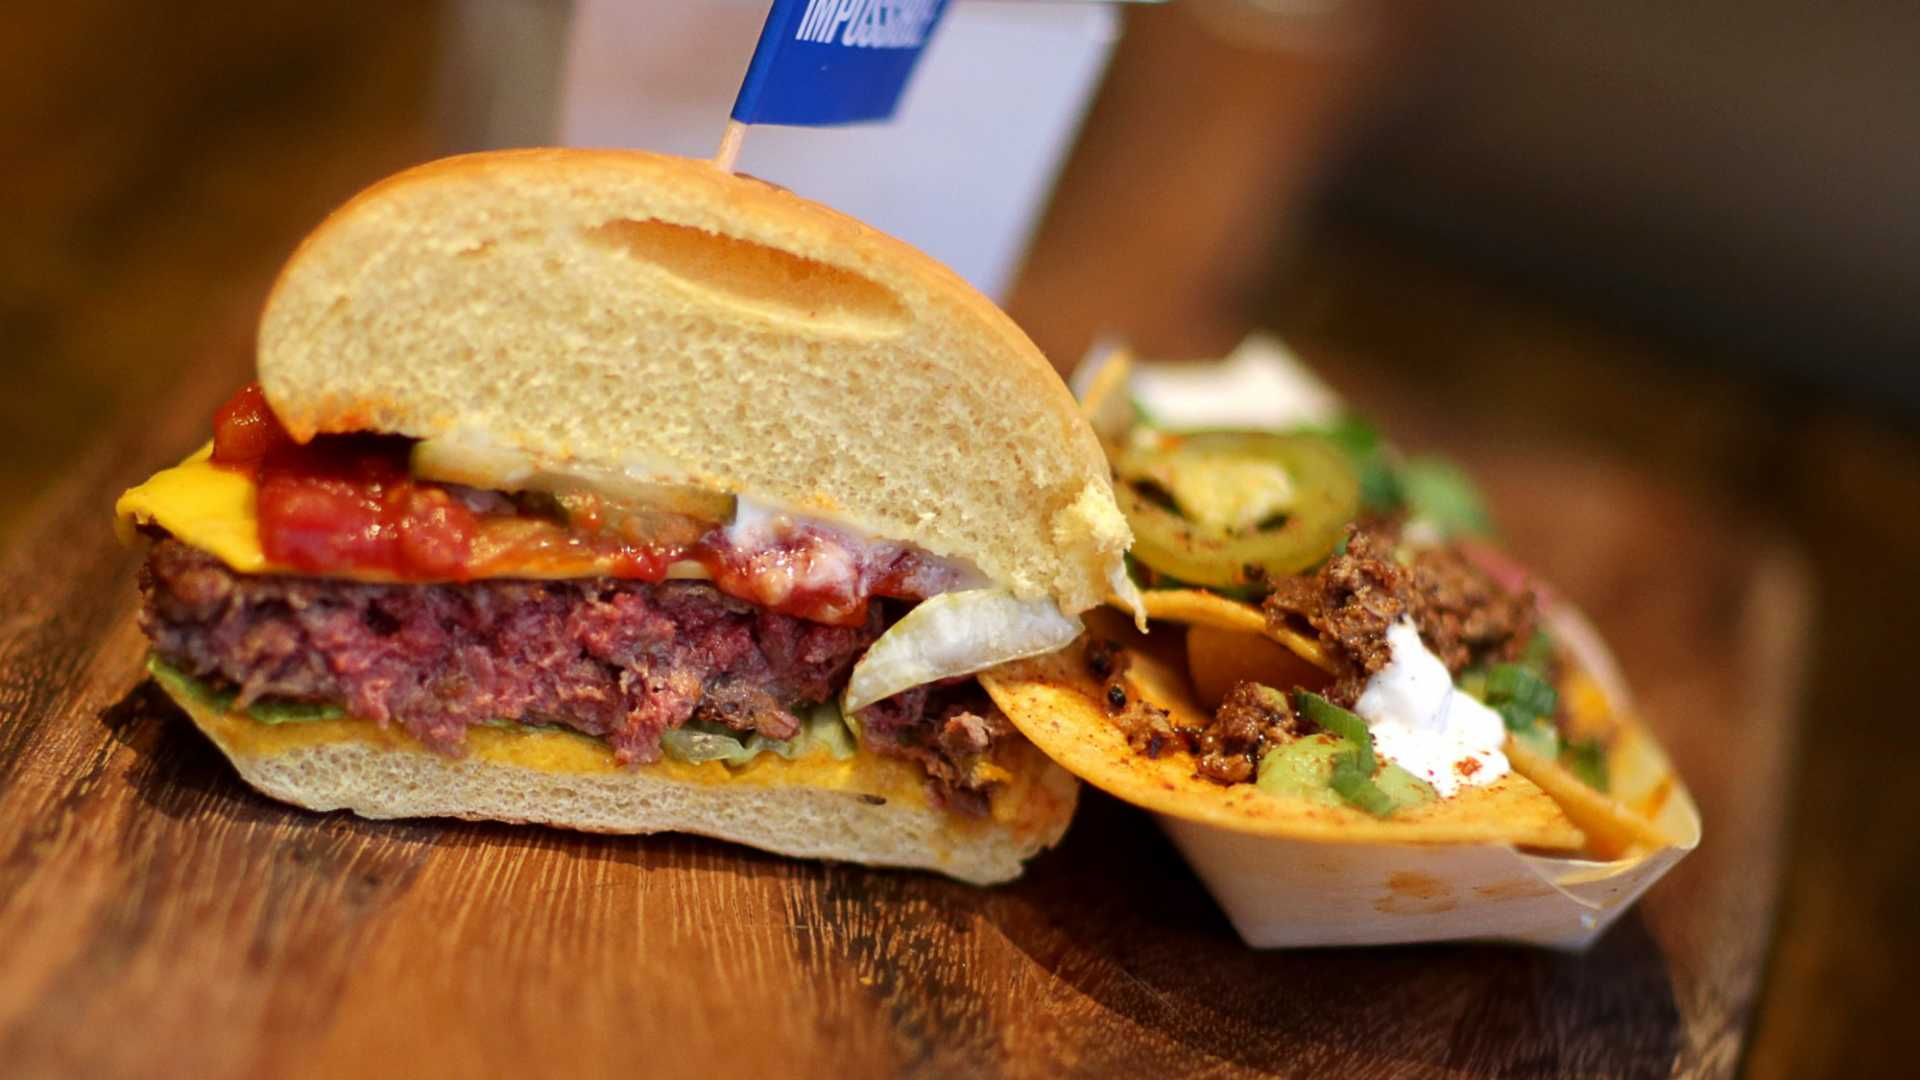 Why Impossible Foods Is Banking on This Very Risky Plan to Fix Its Rough Summer Problems